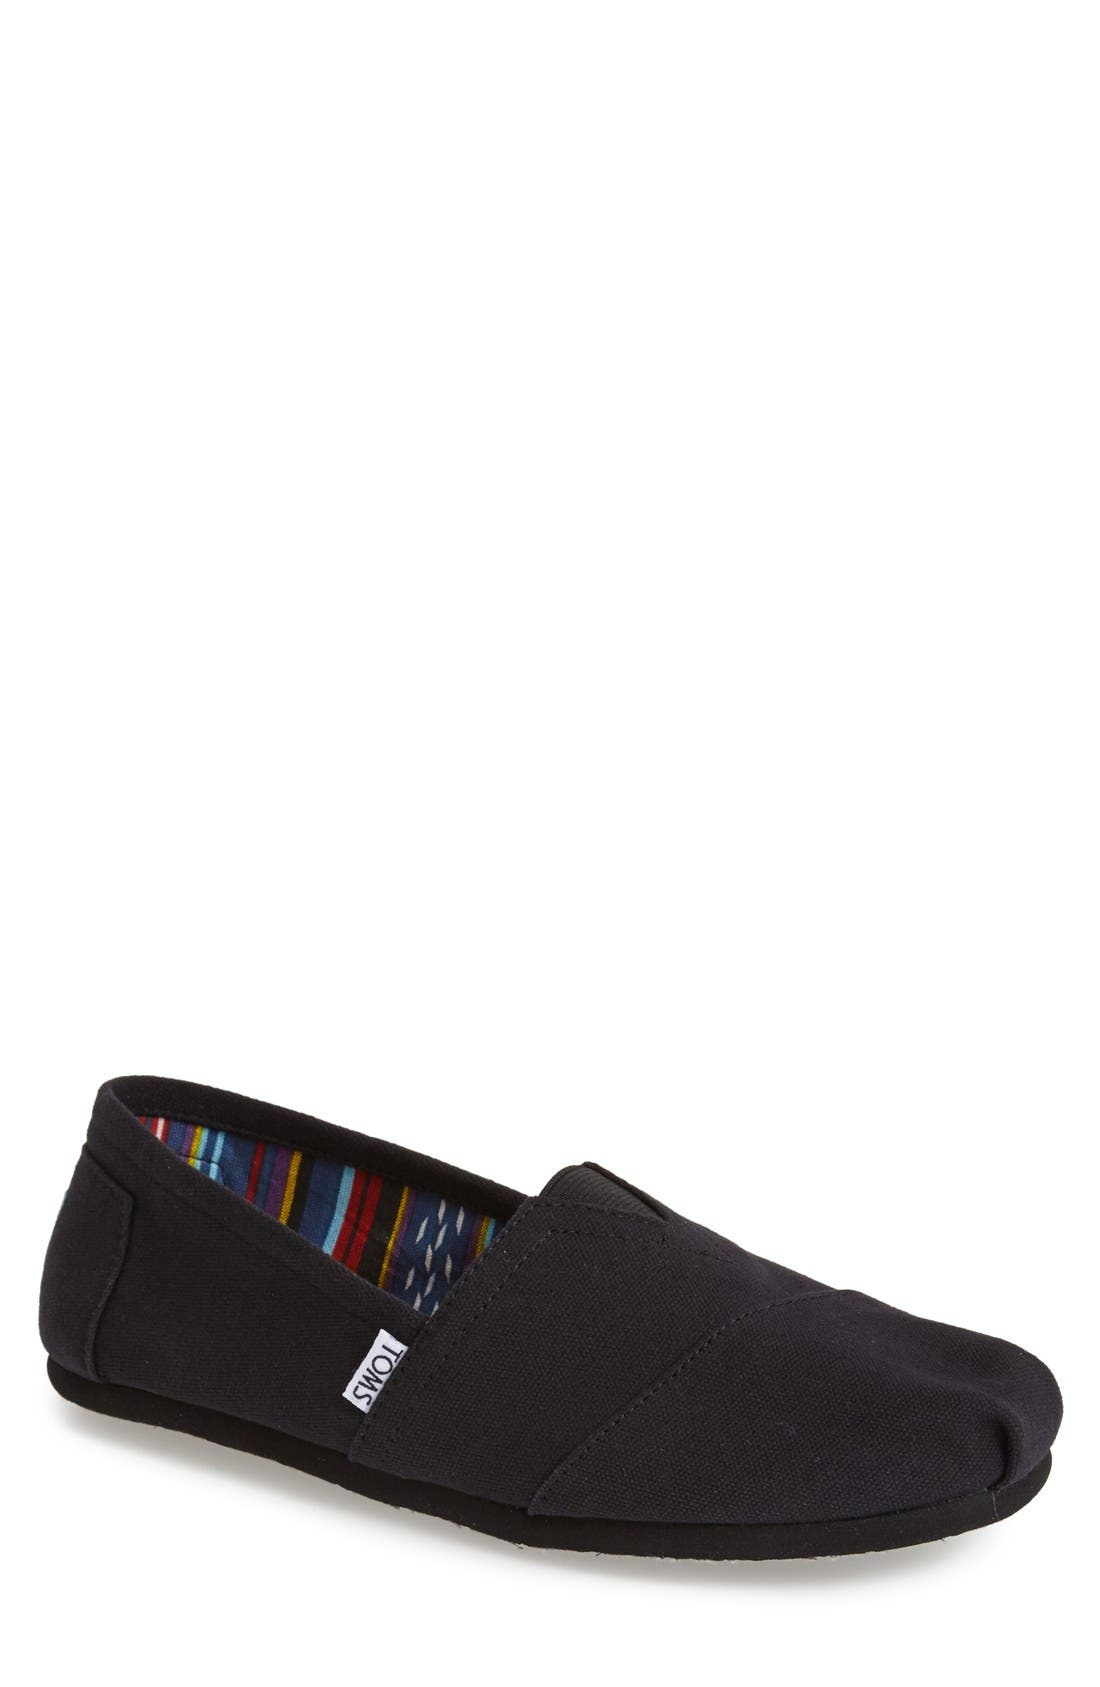 'Classic' Canvas Slip-On,                         Main,                         color, Black/ Black